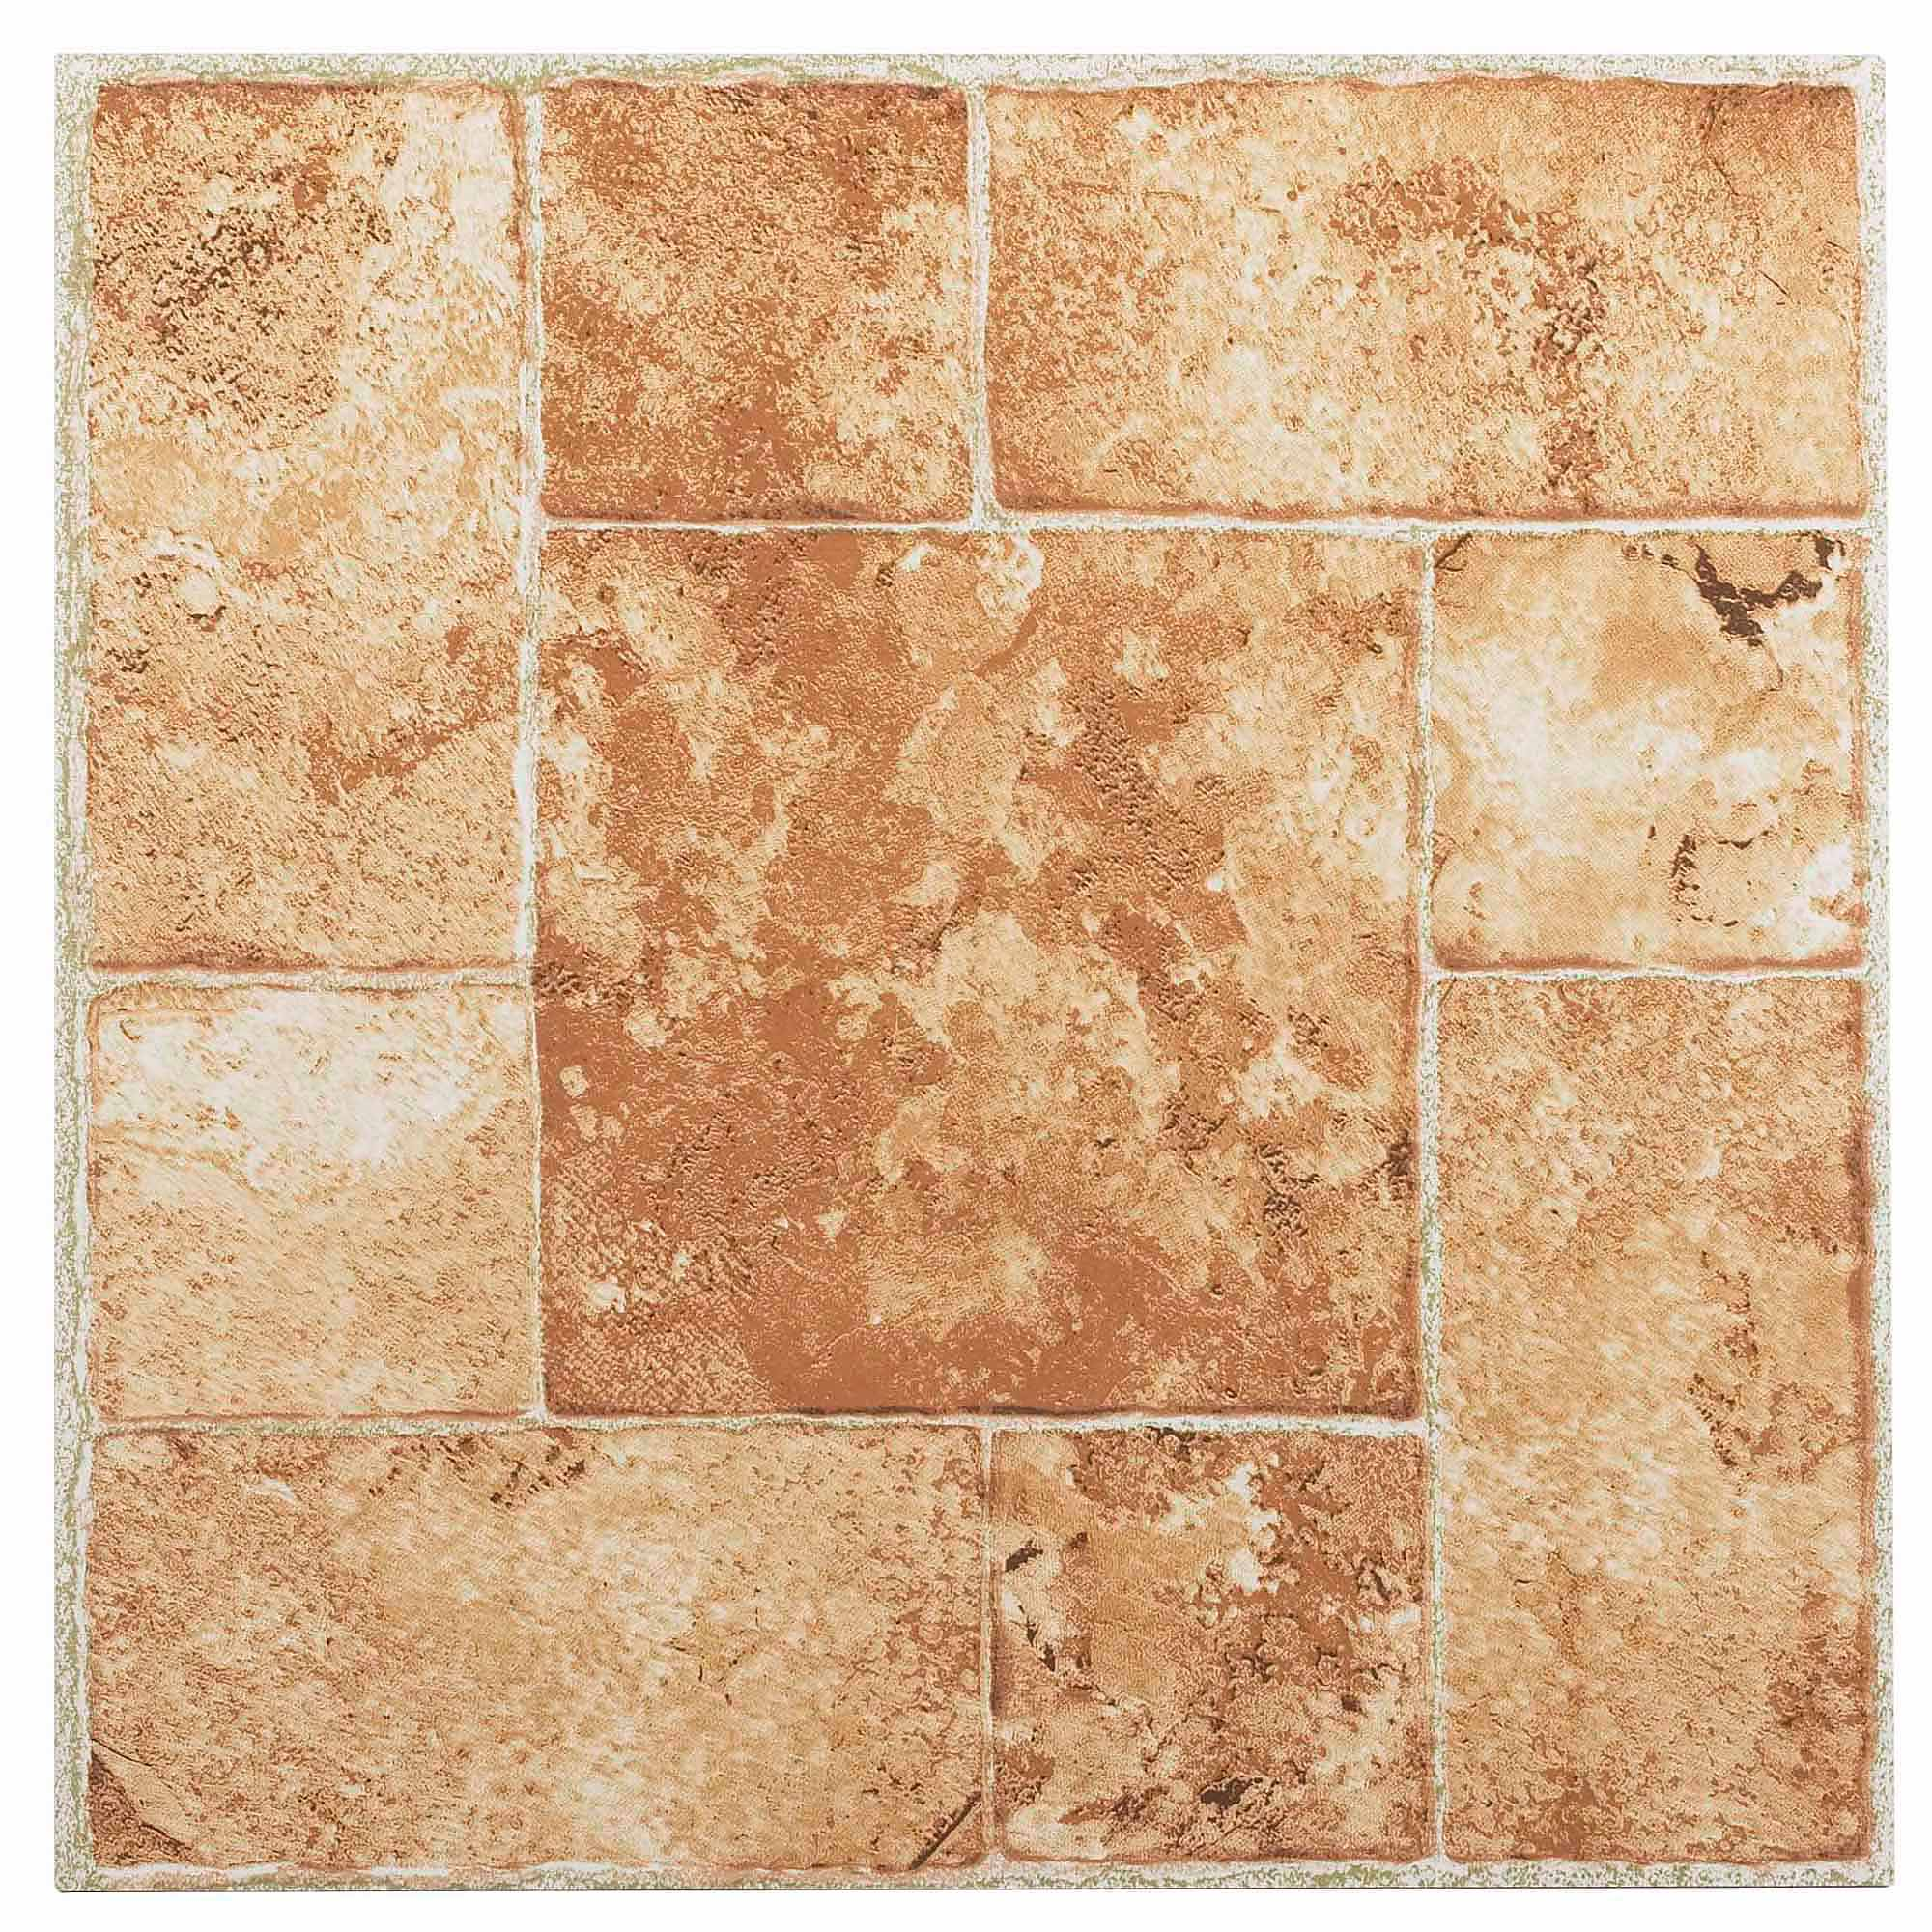 NEXUS Beige Terracotta 12x12 Self Adhesive Vinyl Floor Tile - 20 Tiles/20 Sq.Ft.